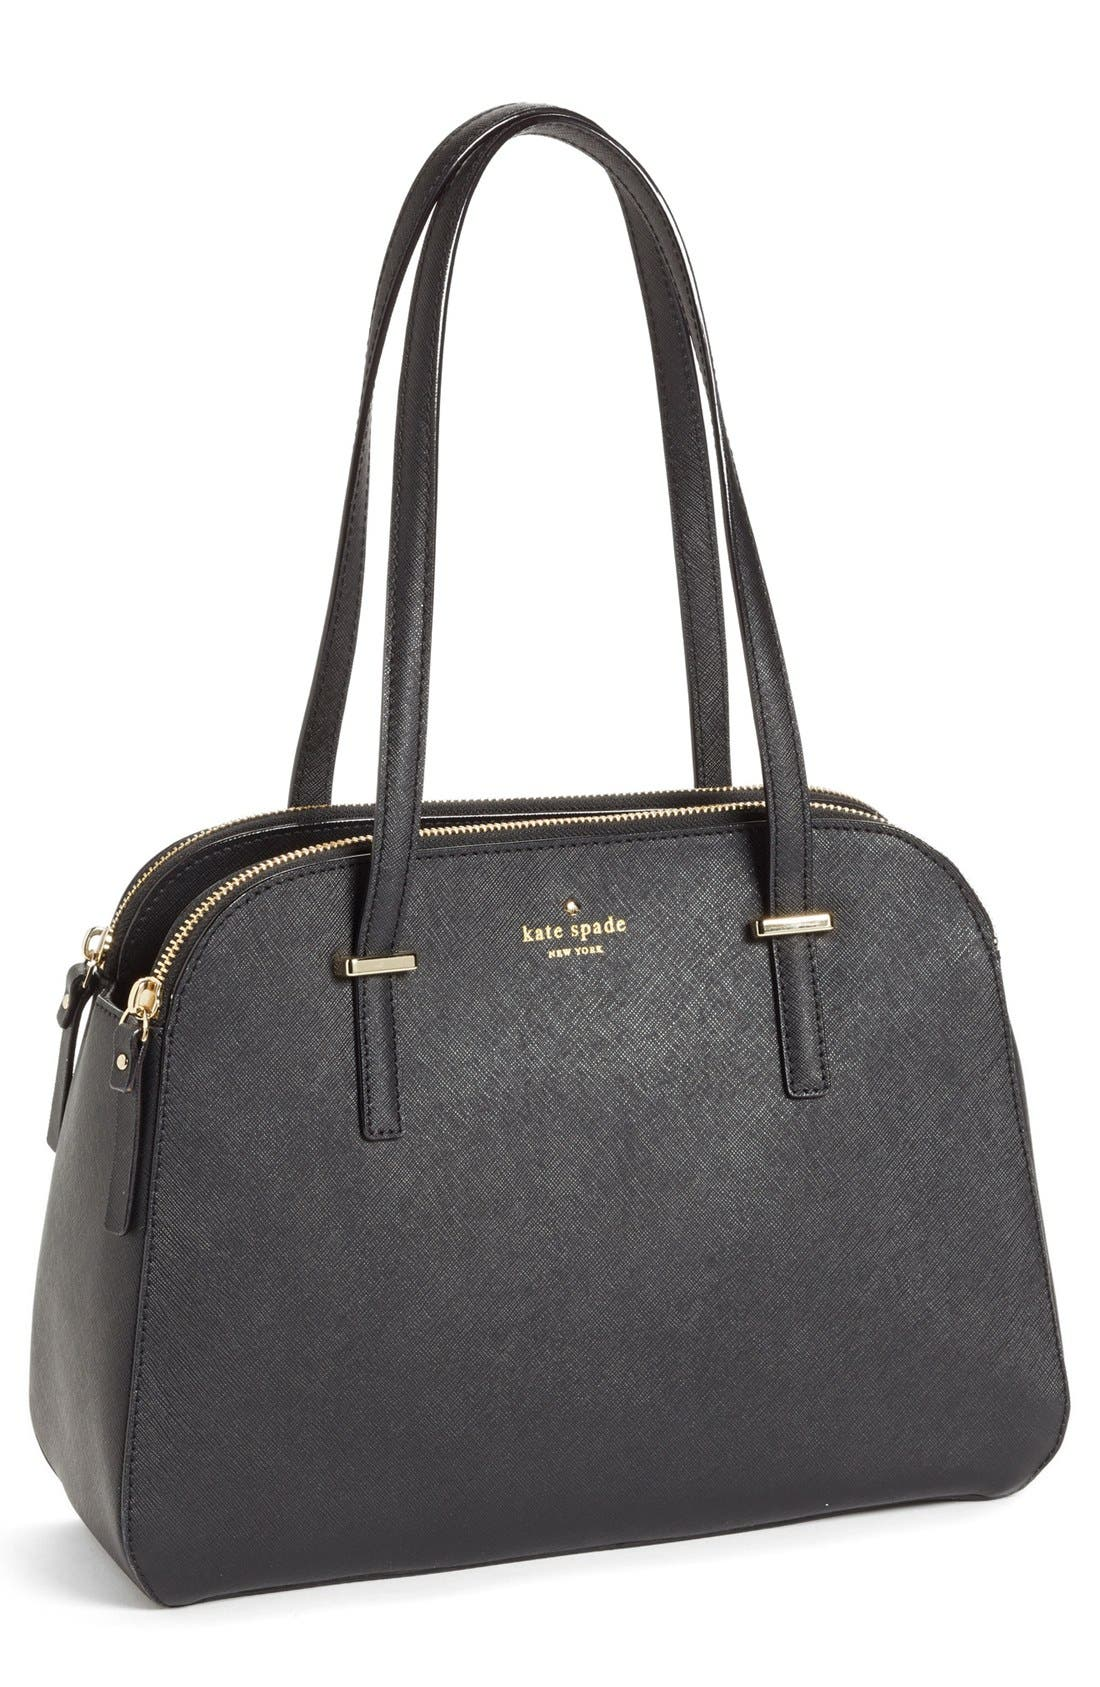 Main Image - kate spade new york 'small elissa' tote